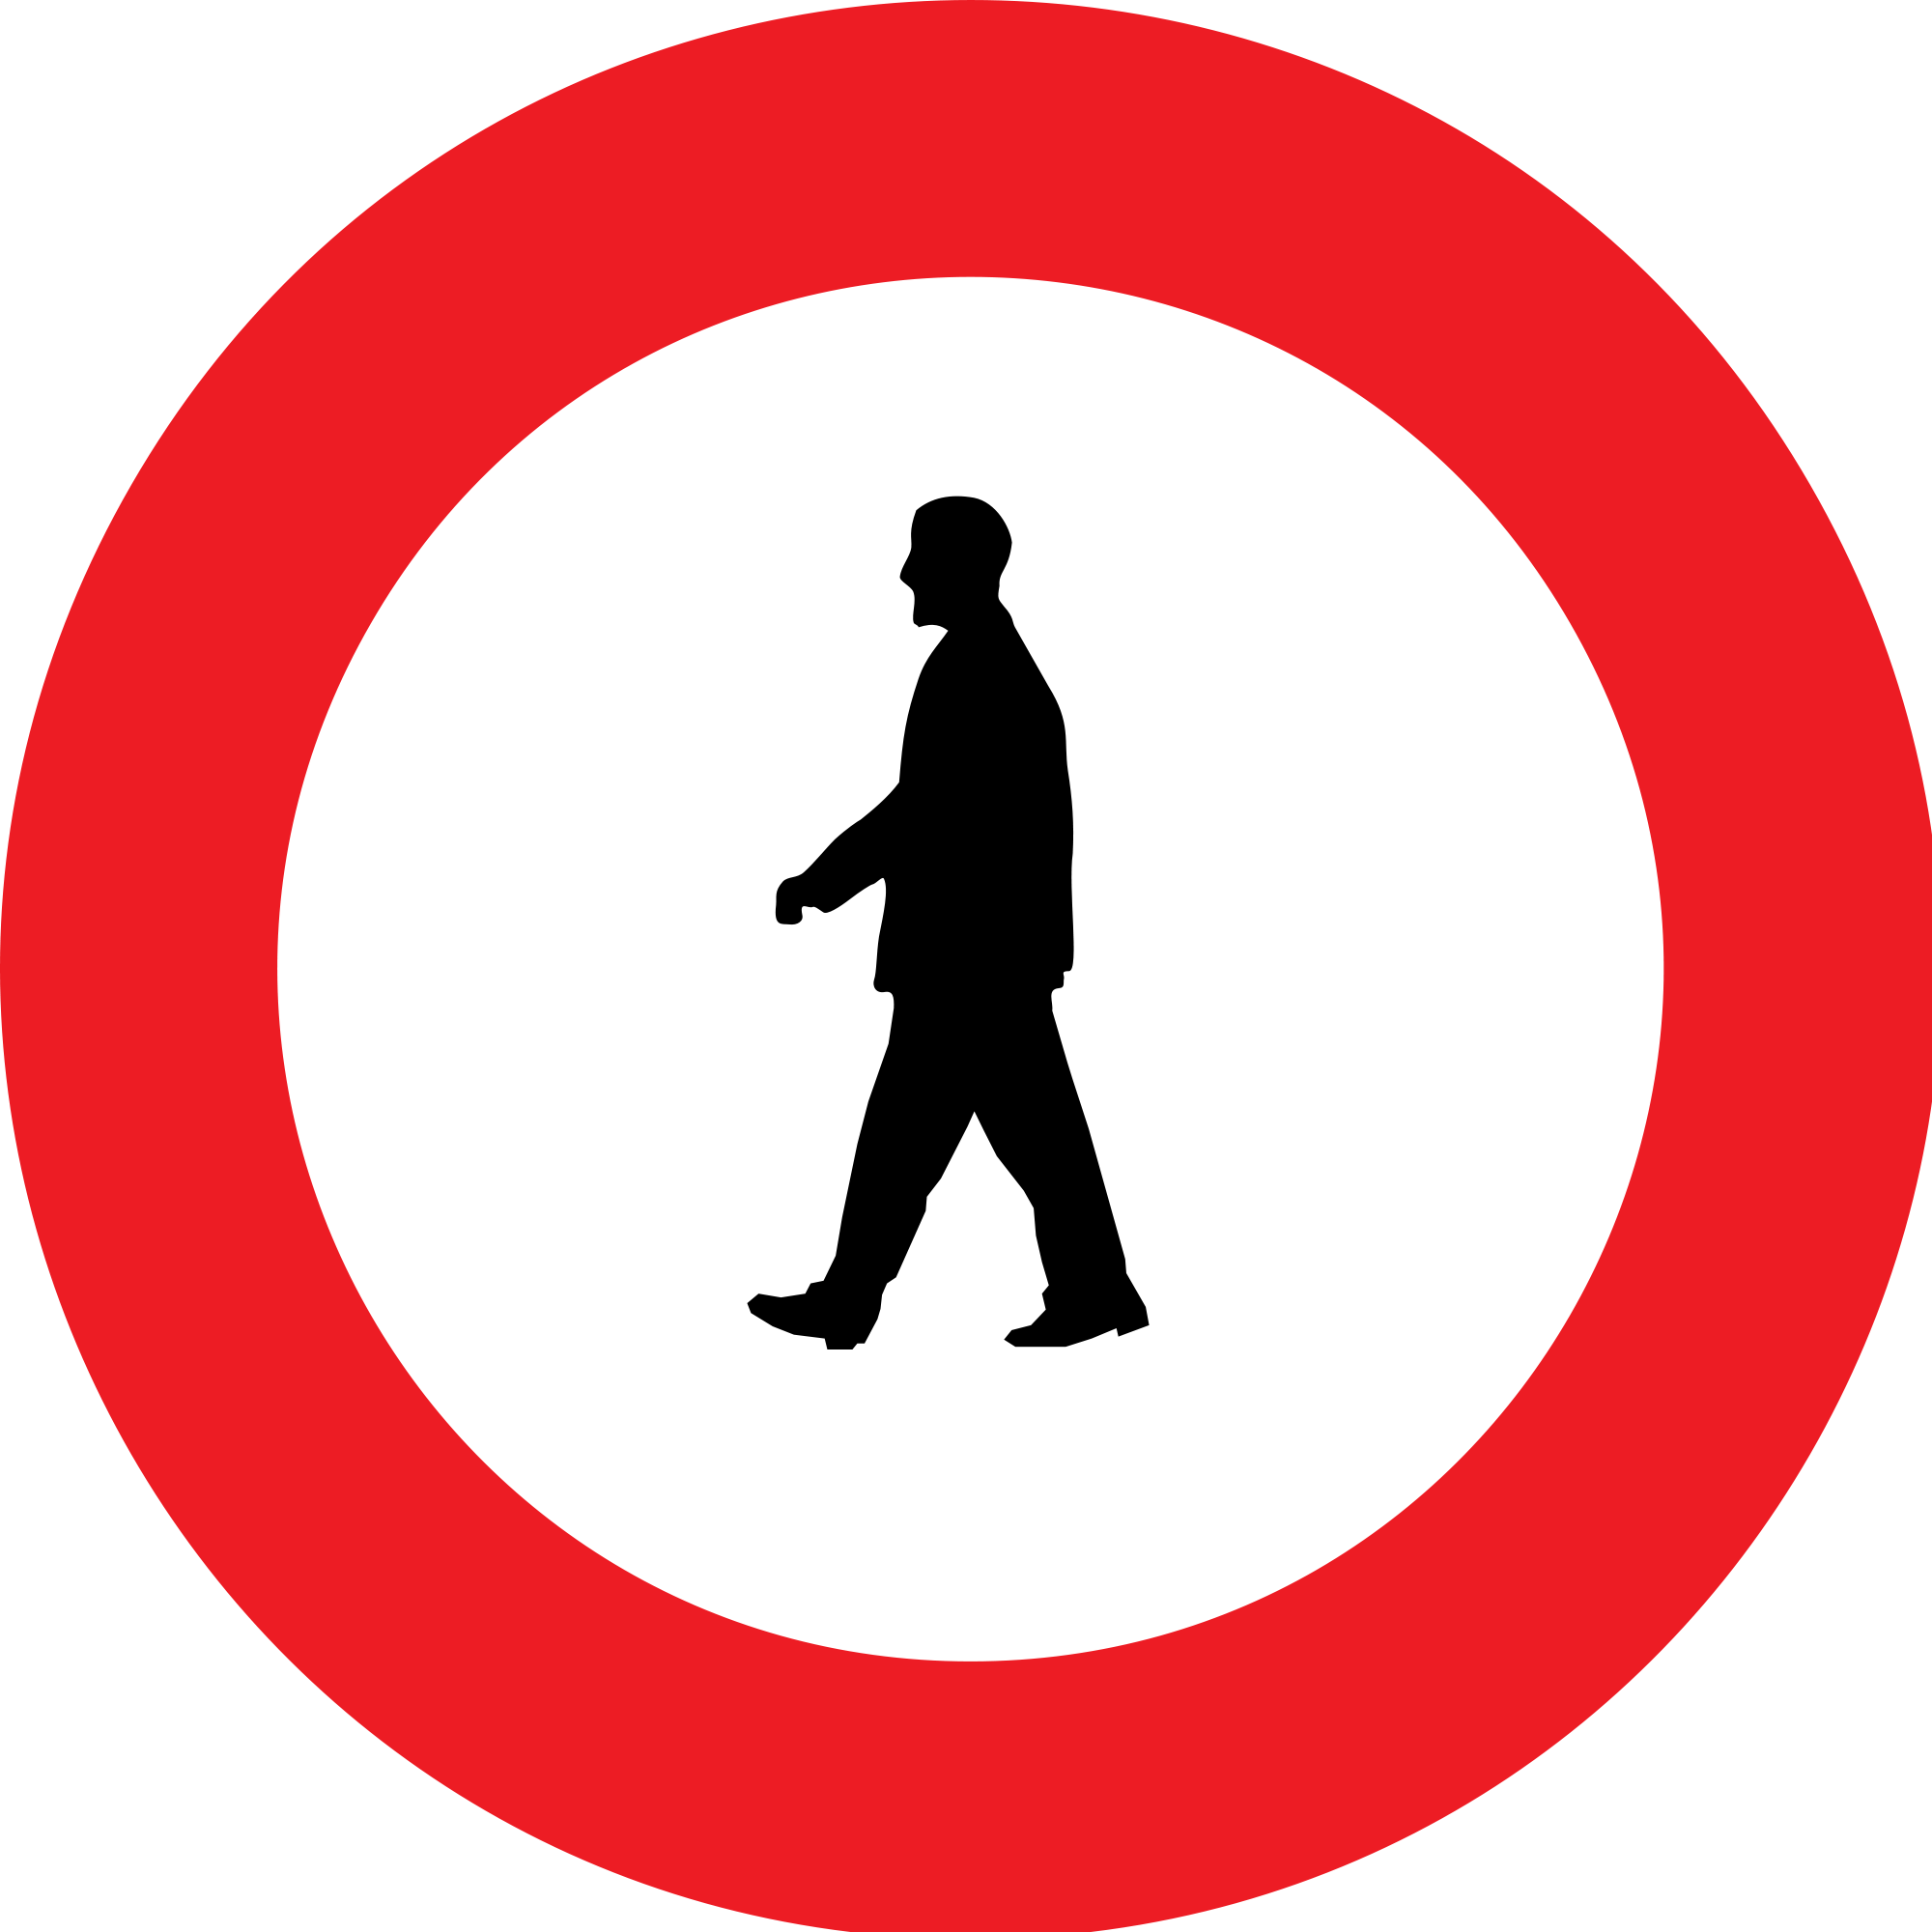 Clipart road silhouette. Sign at getdrawings com